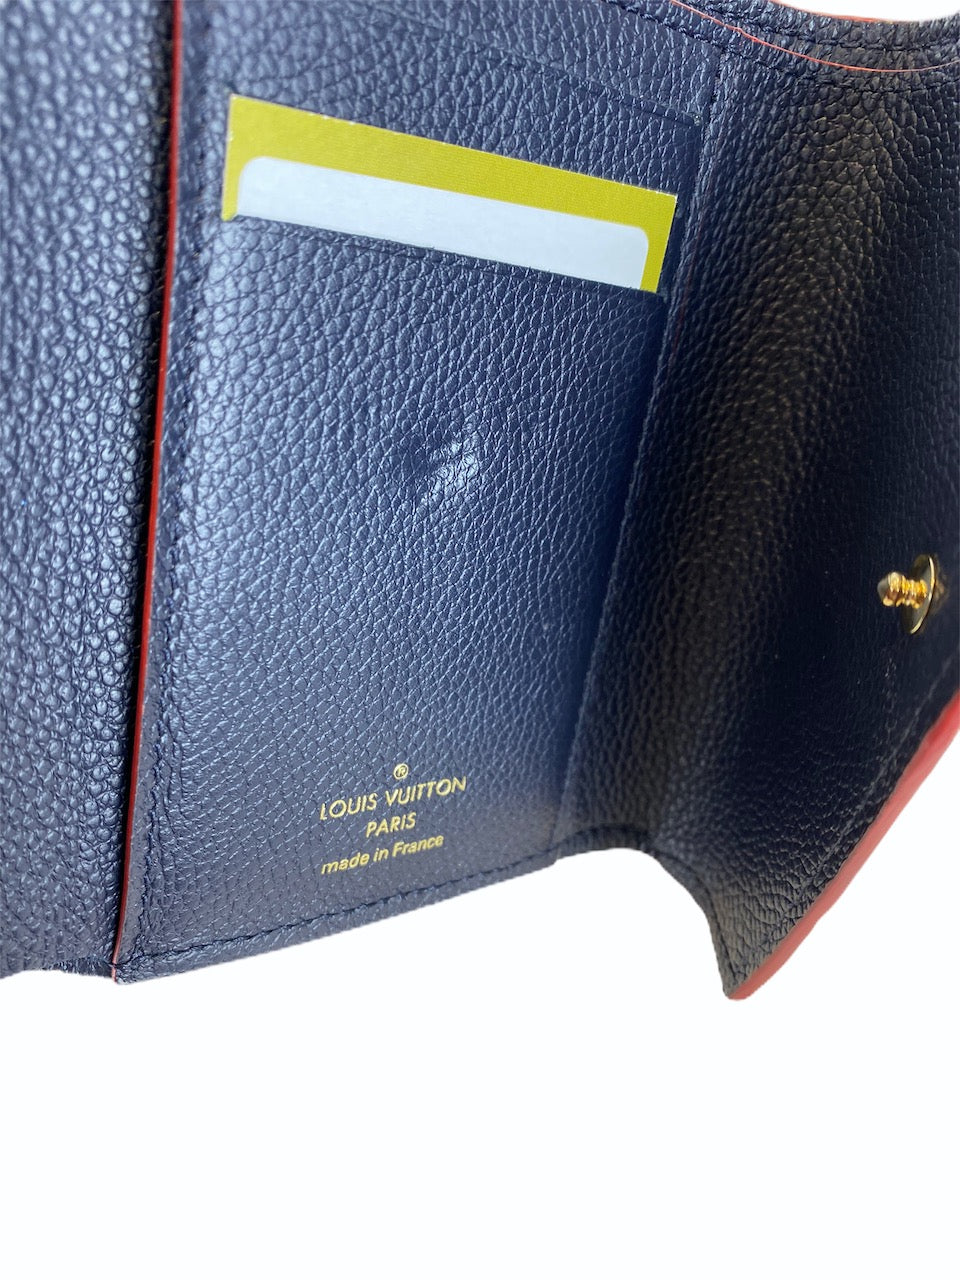 Louis Vuitton Navy Empreinte Victorine Wallet  - As Seen on Instagram 2/9/20